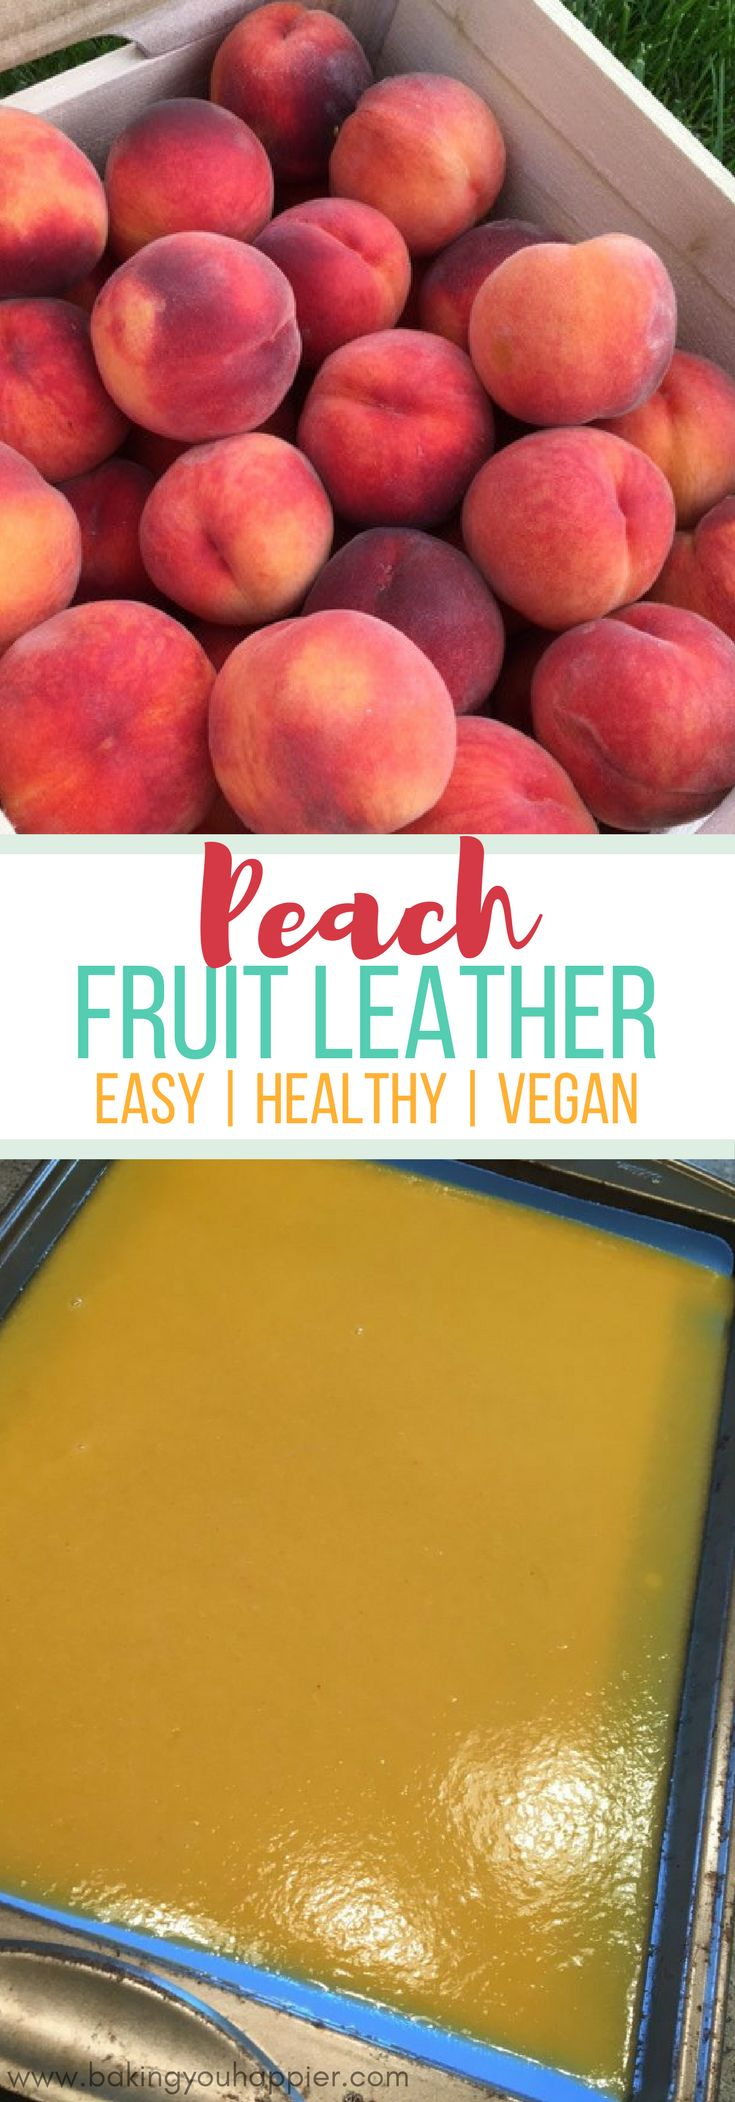 Peach Fruit Leather Recipe, adding to a growing list of healthy snacks for your family! And, ramblings to improve self-discipline.